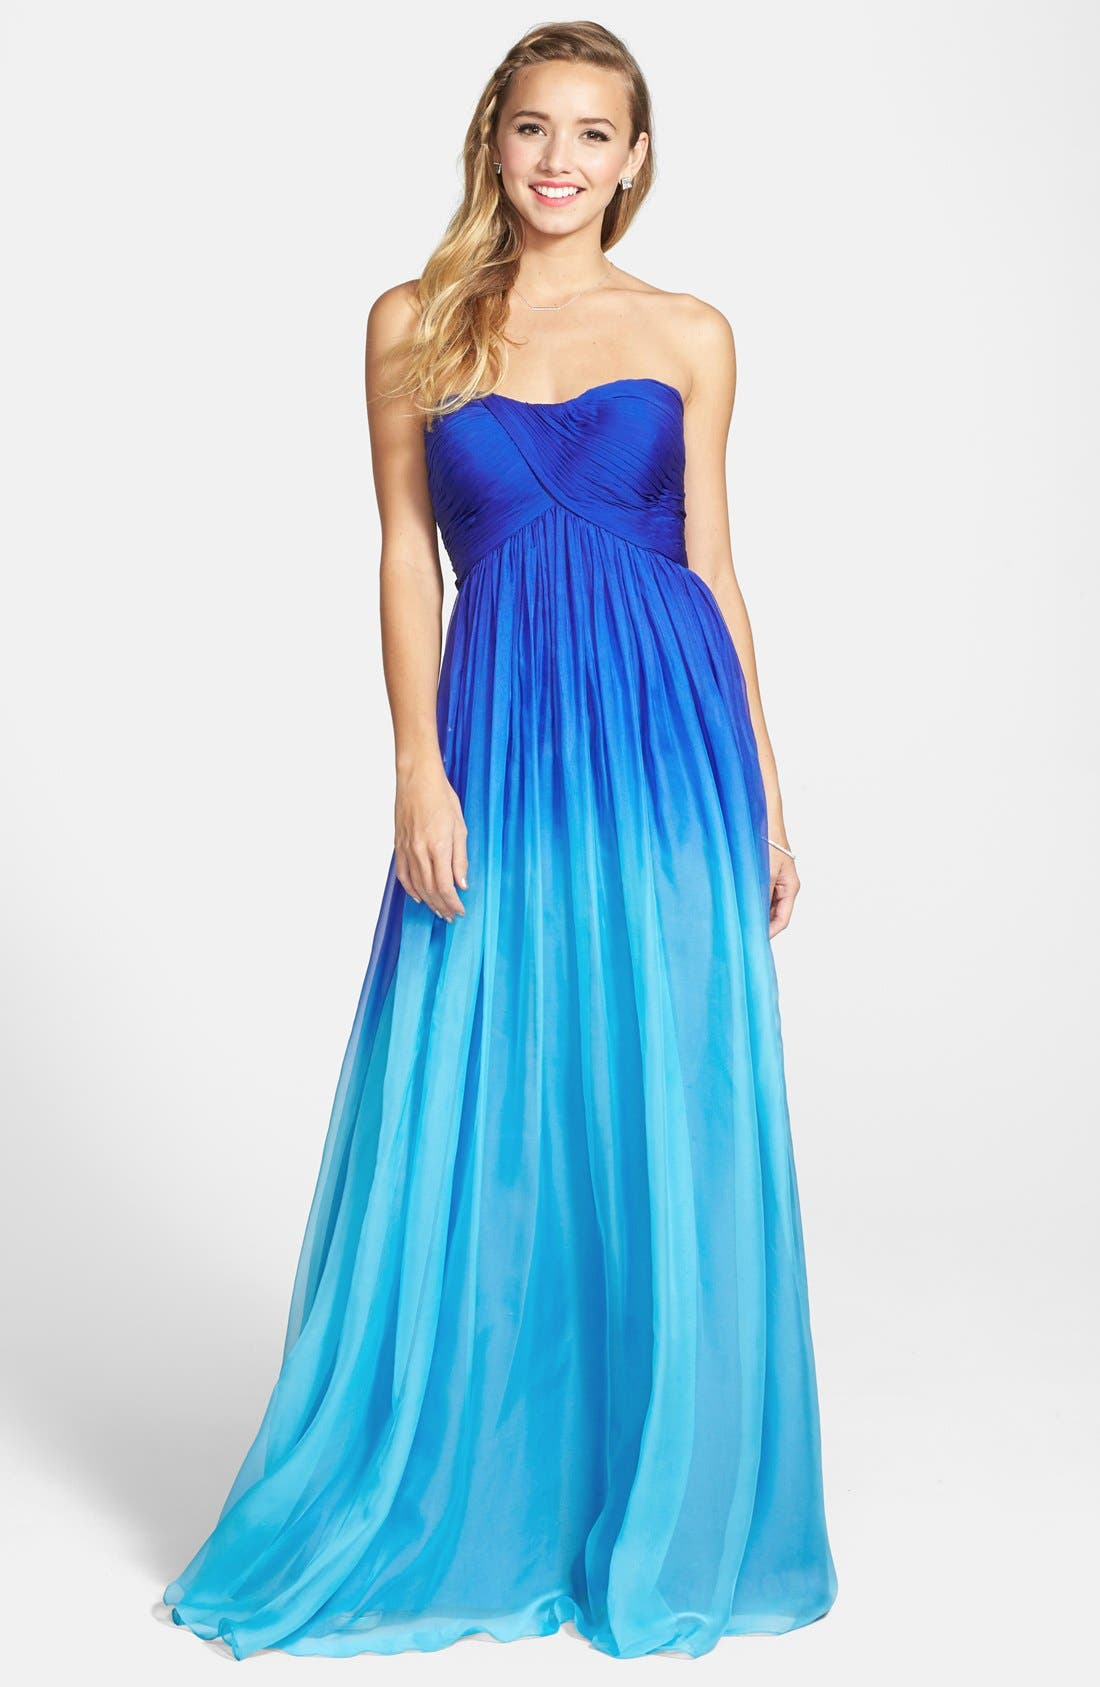 Alternate Image 1 Selected - La Femme Ruched Ombré Chiffon Strapless Gown